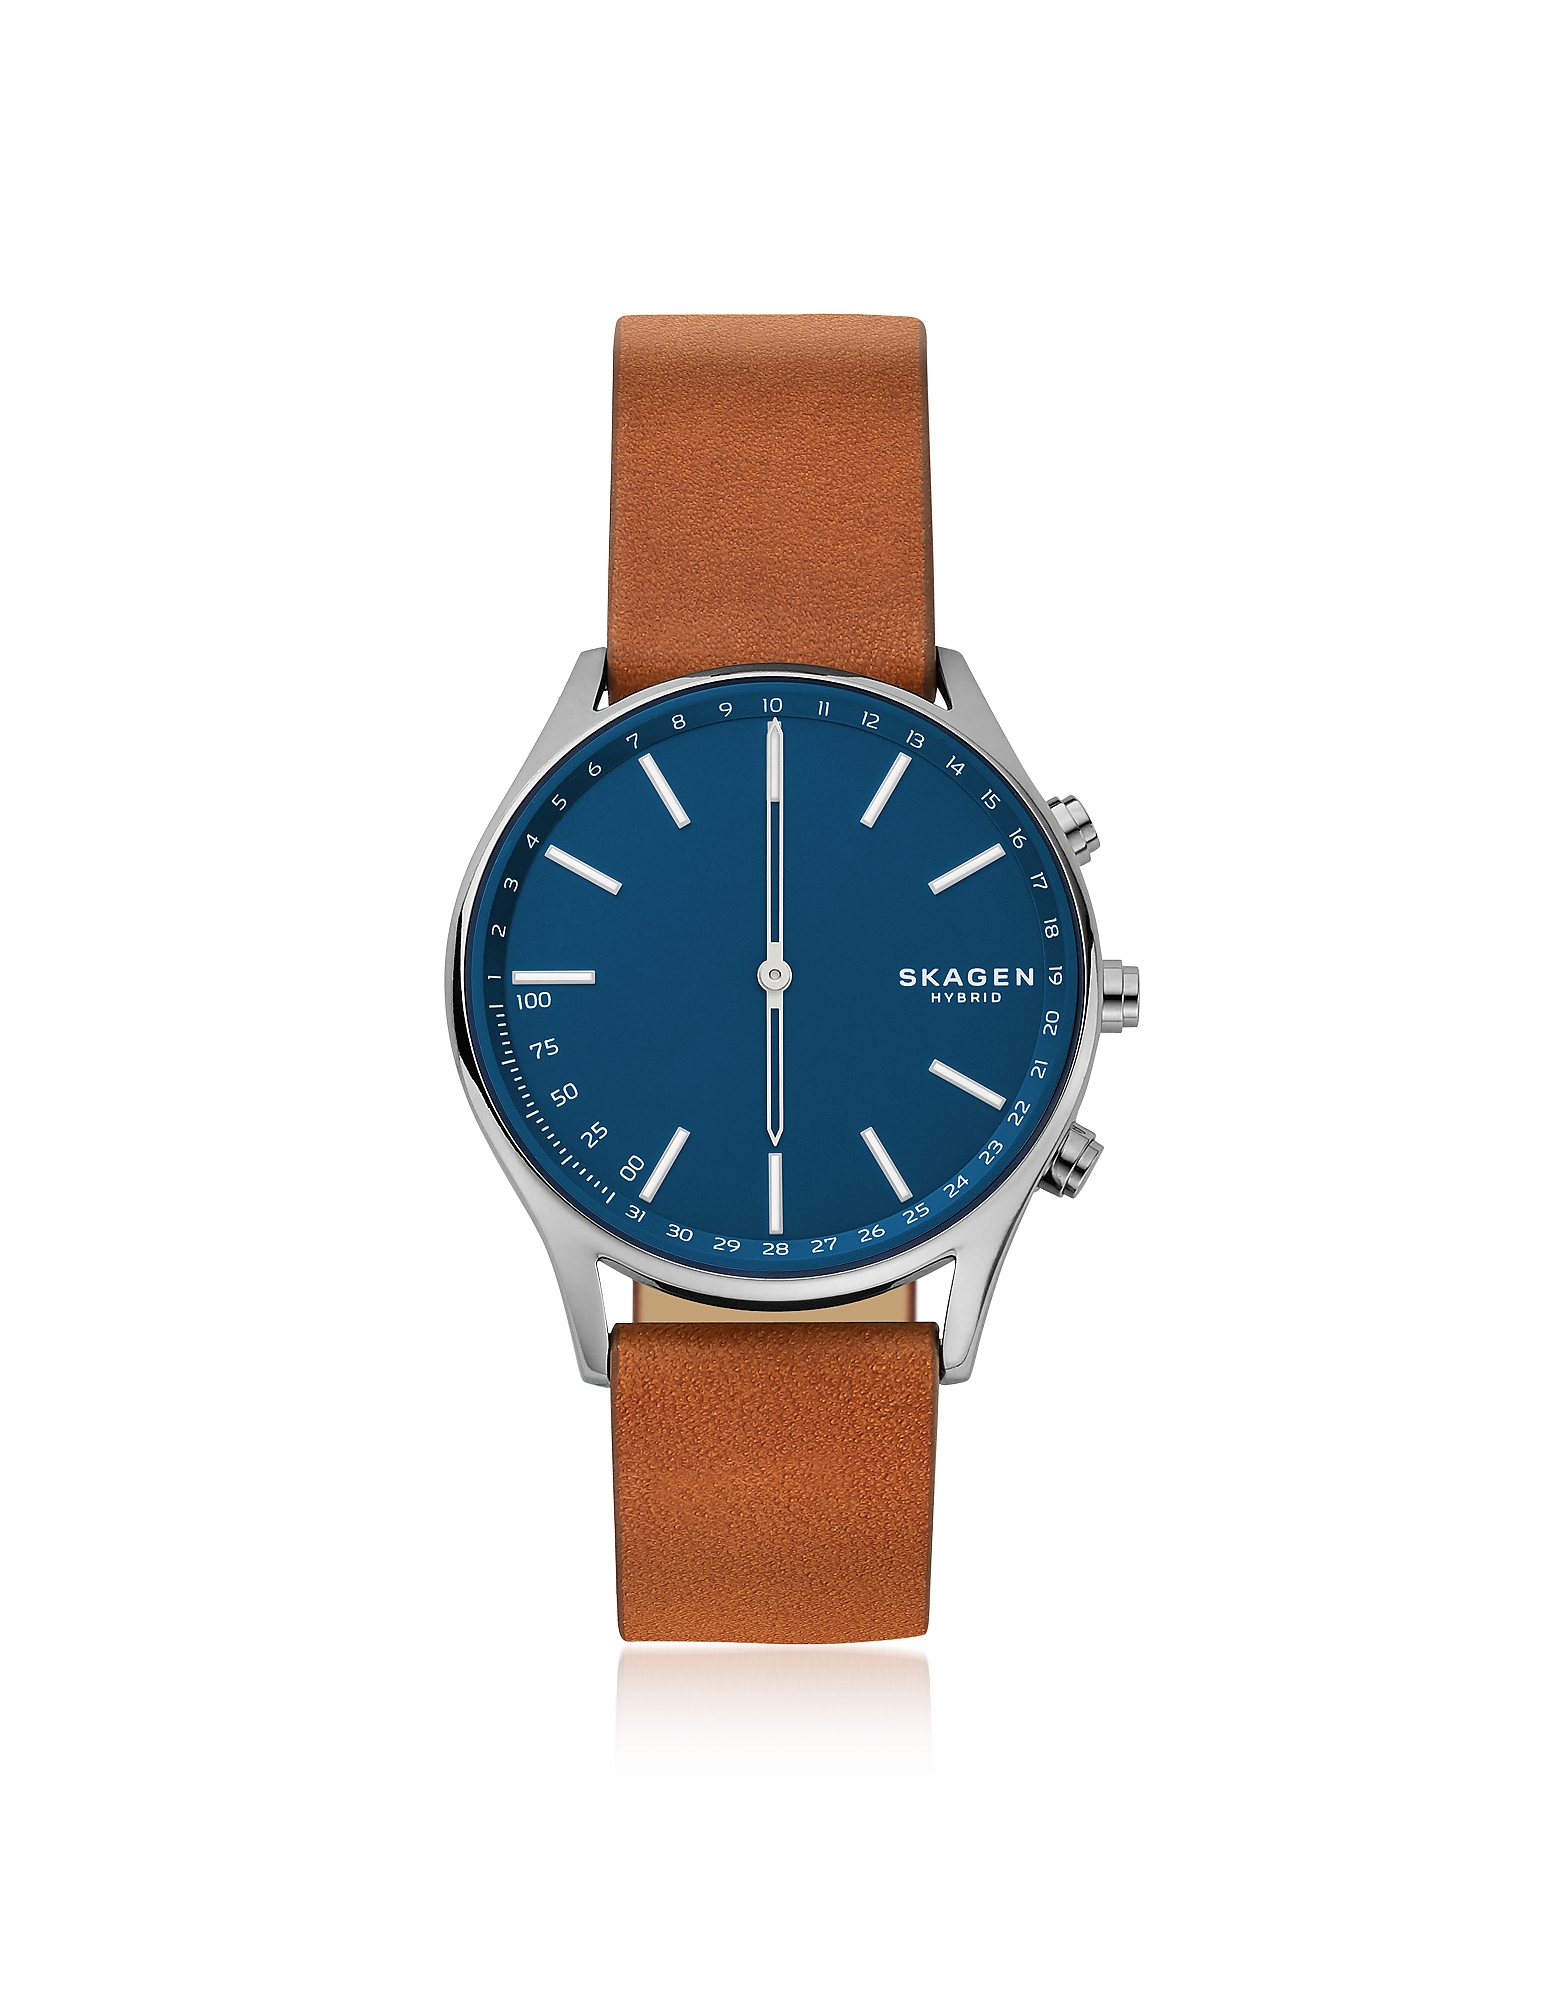 Holst Titanium and Brown Leather Hybrid Smartwatch